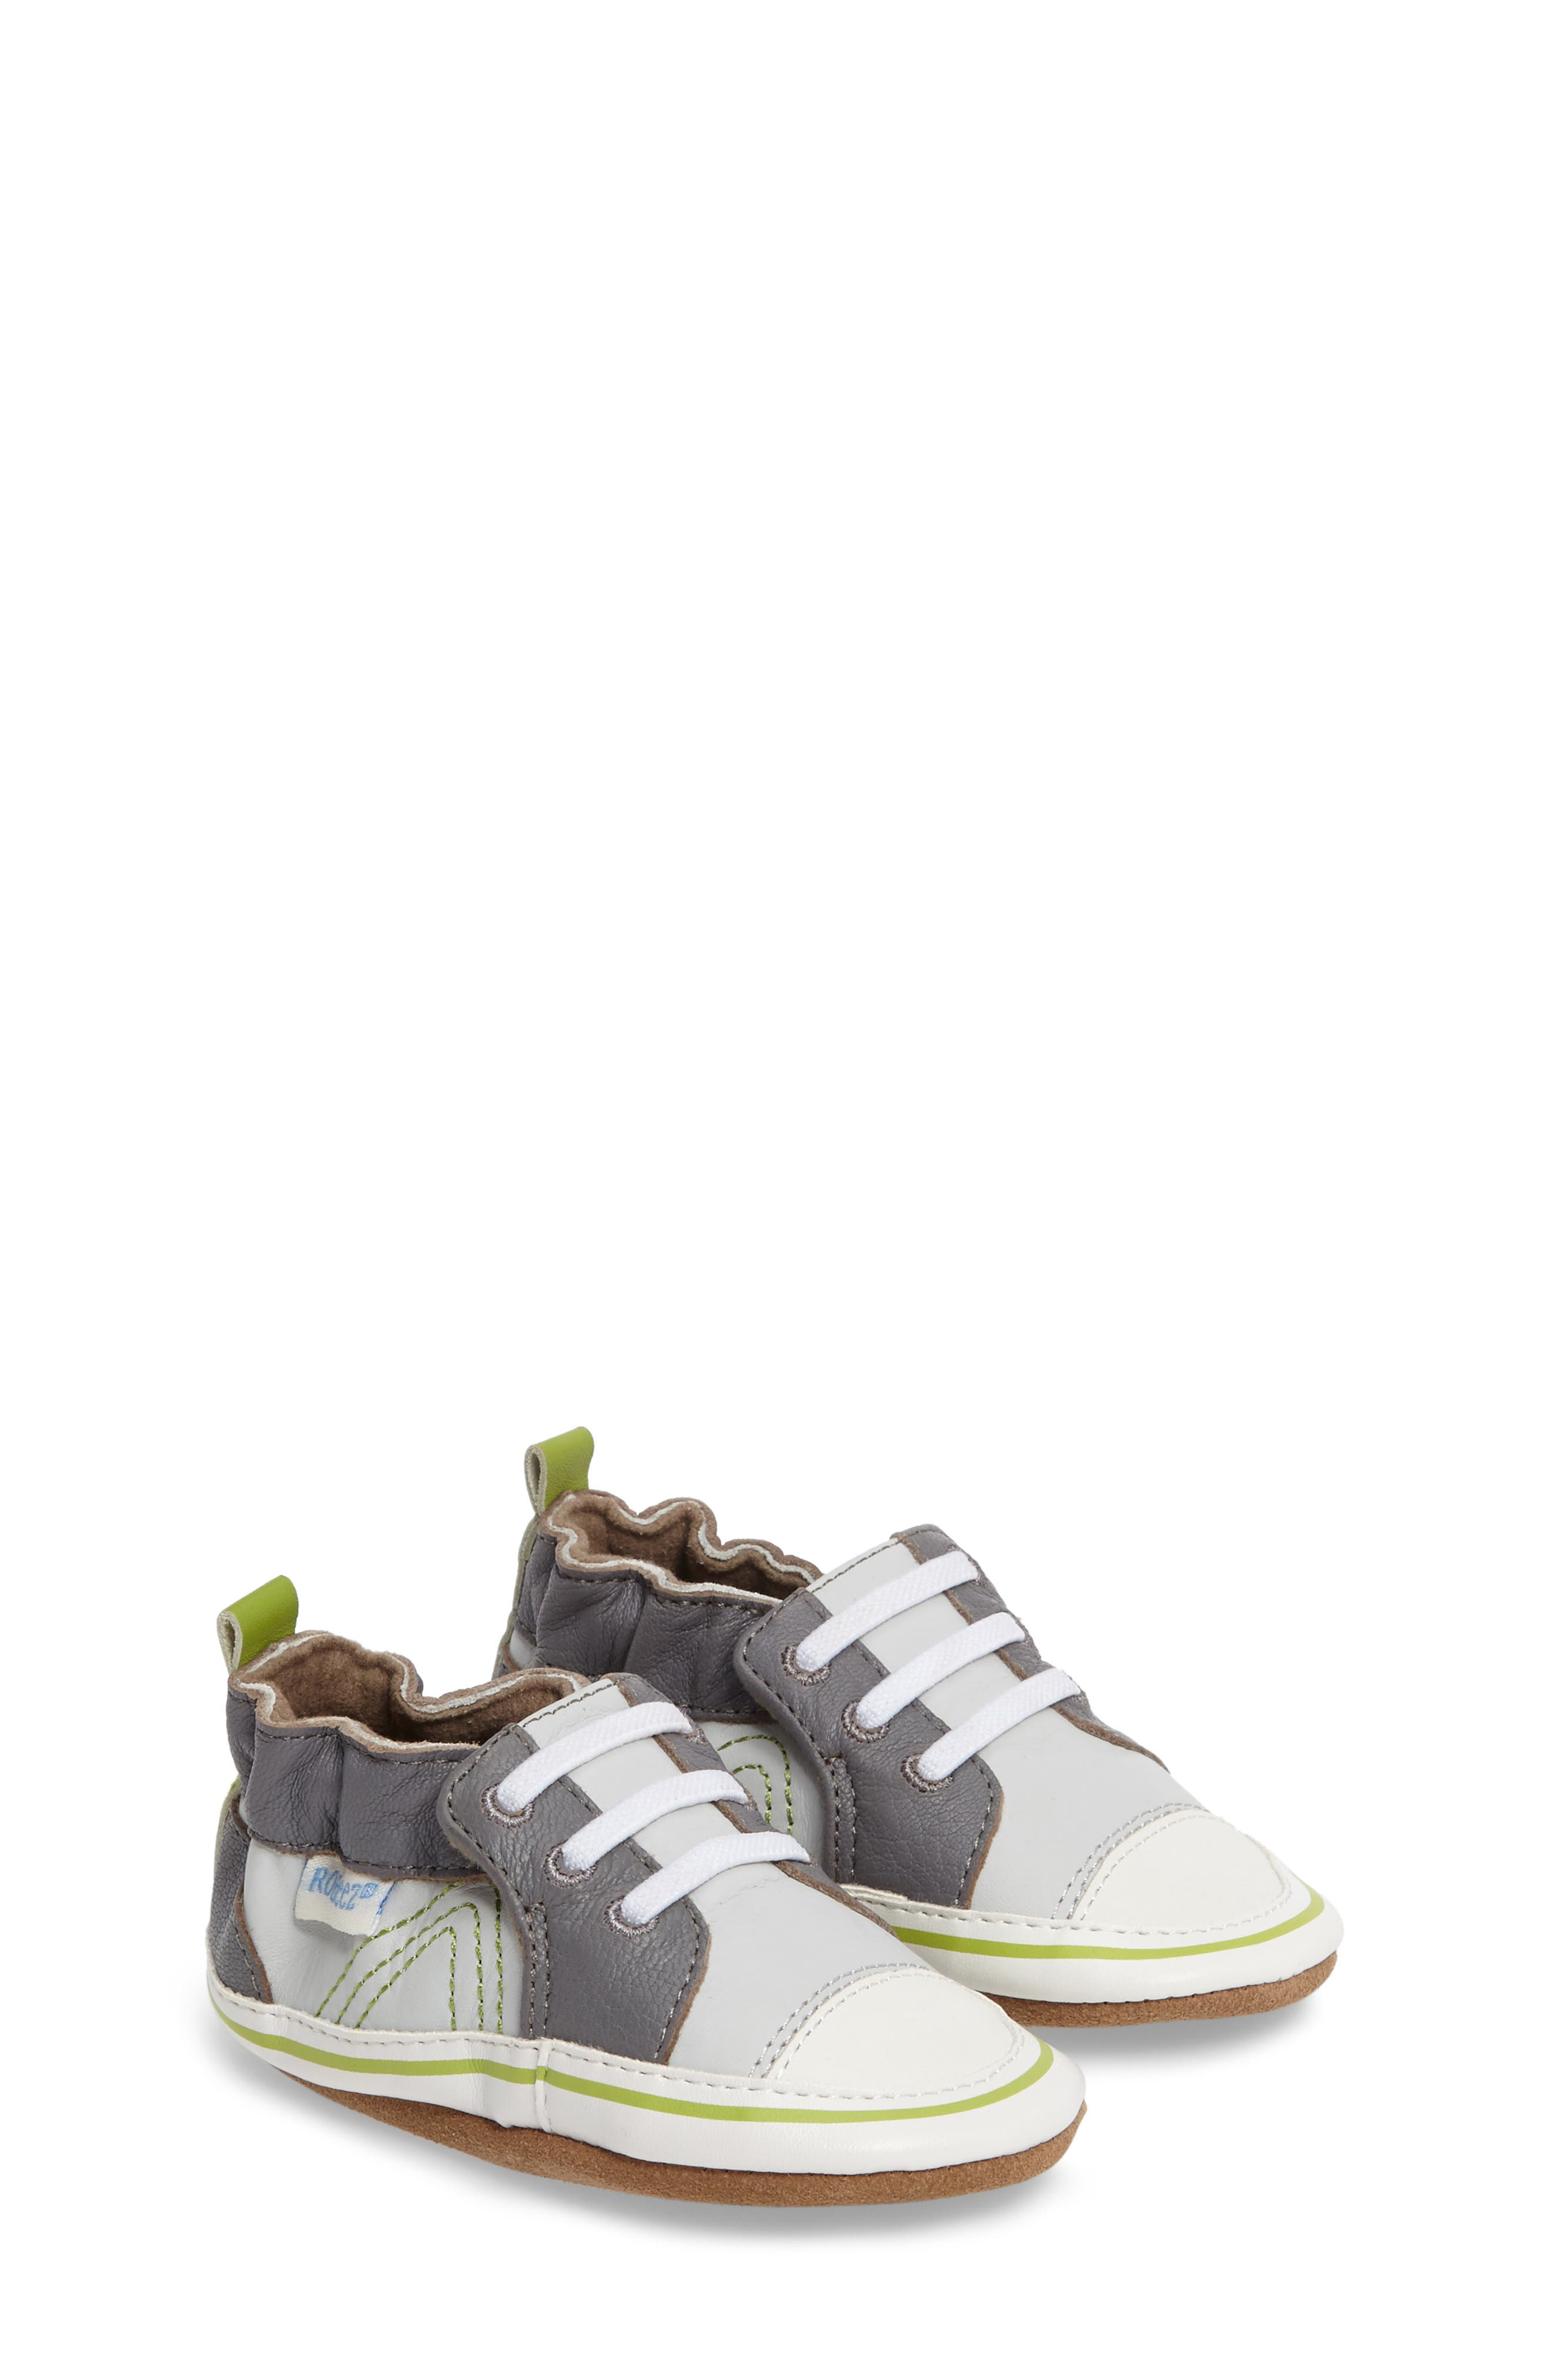 Trendy Trainer Sneaker Crib Shoe,                             Main thumbnail 1, color,                             Grey Leather